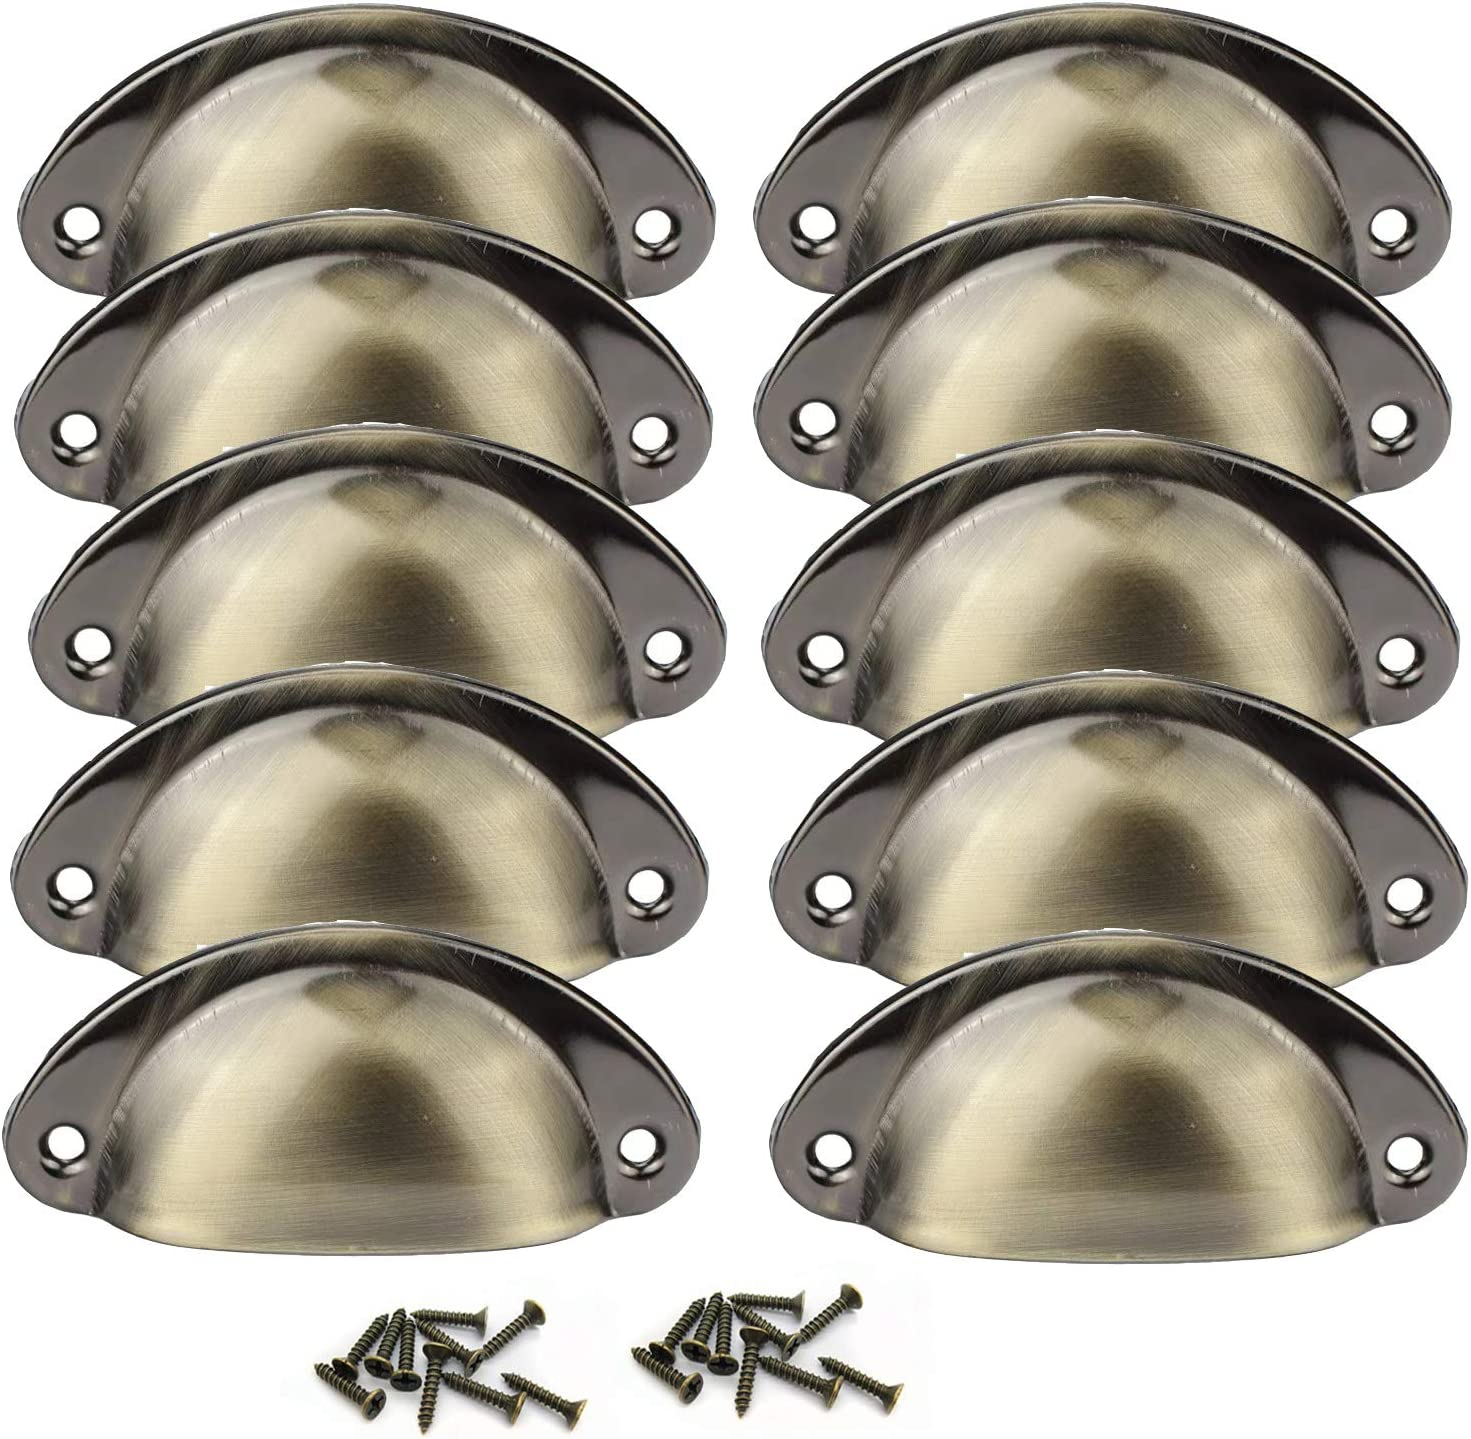 Cabinet Bin Cup Drawer Pull-10 Pack Hardware Handle Pull,2.5